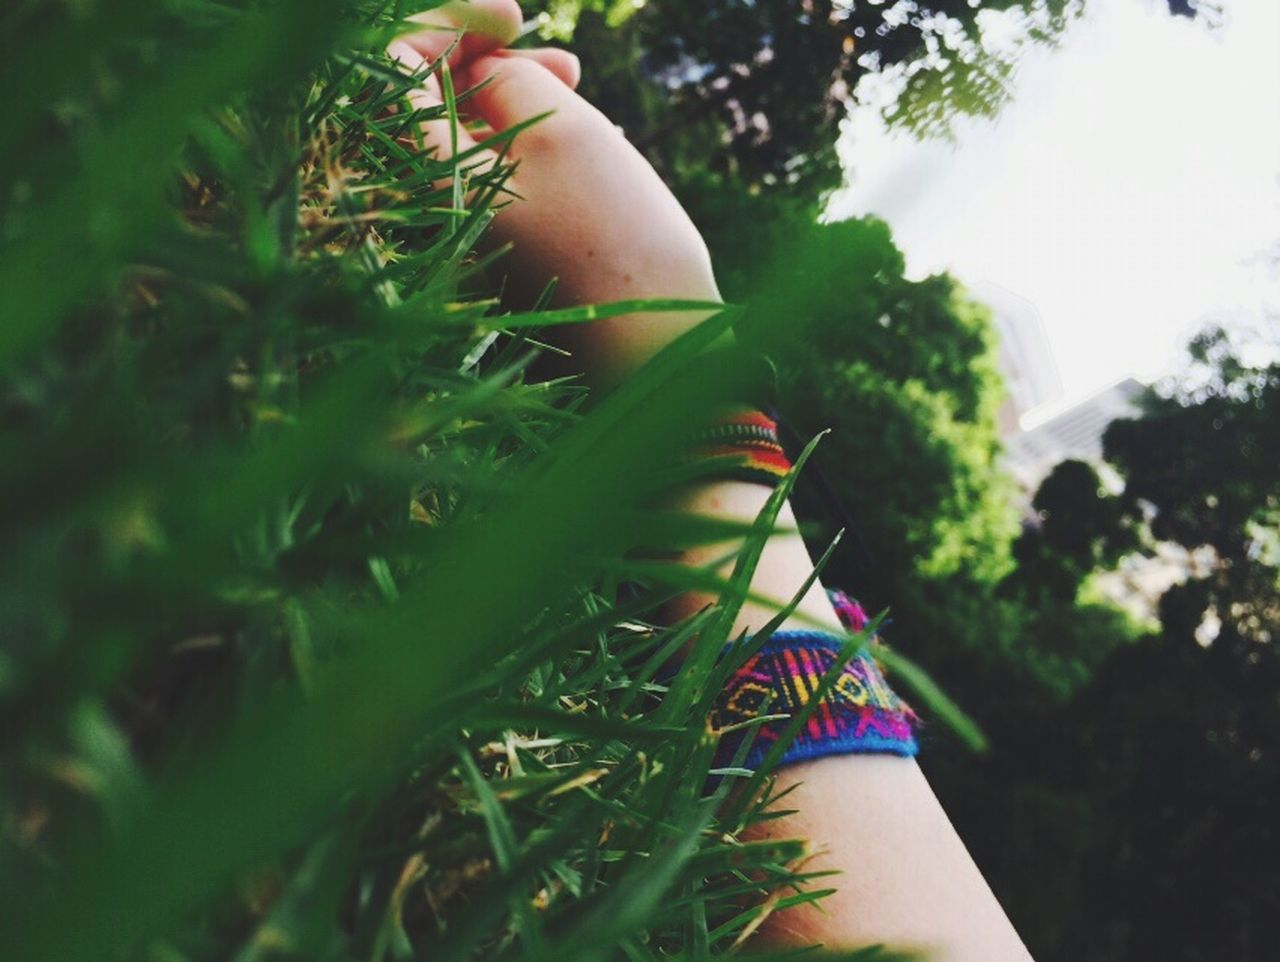 real people, human body part, one person, human hand, day, tree, outdoors, plant, growth, lifestyles, grass, close-up, nature, flower, people